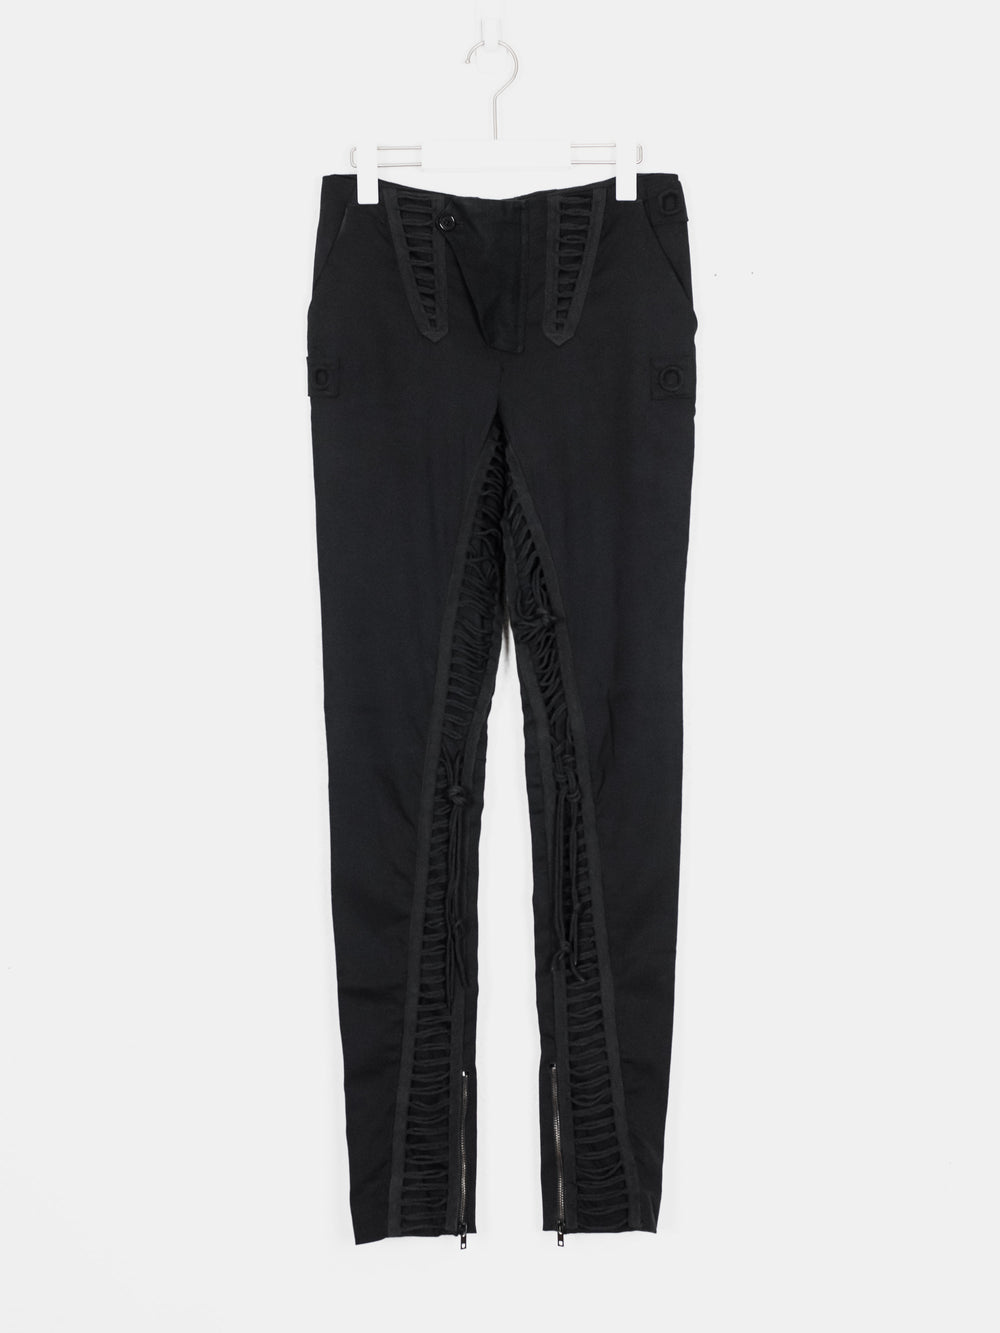 Helmut Lang AW03 Aviator Trousers